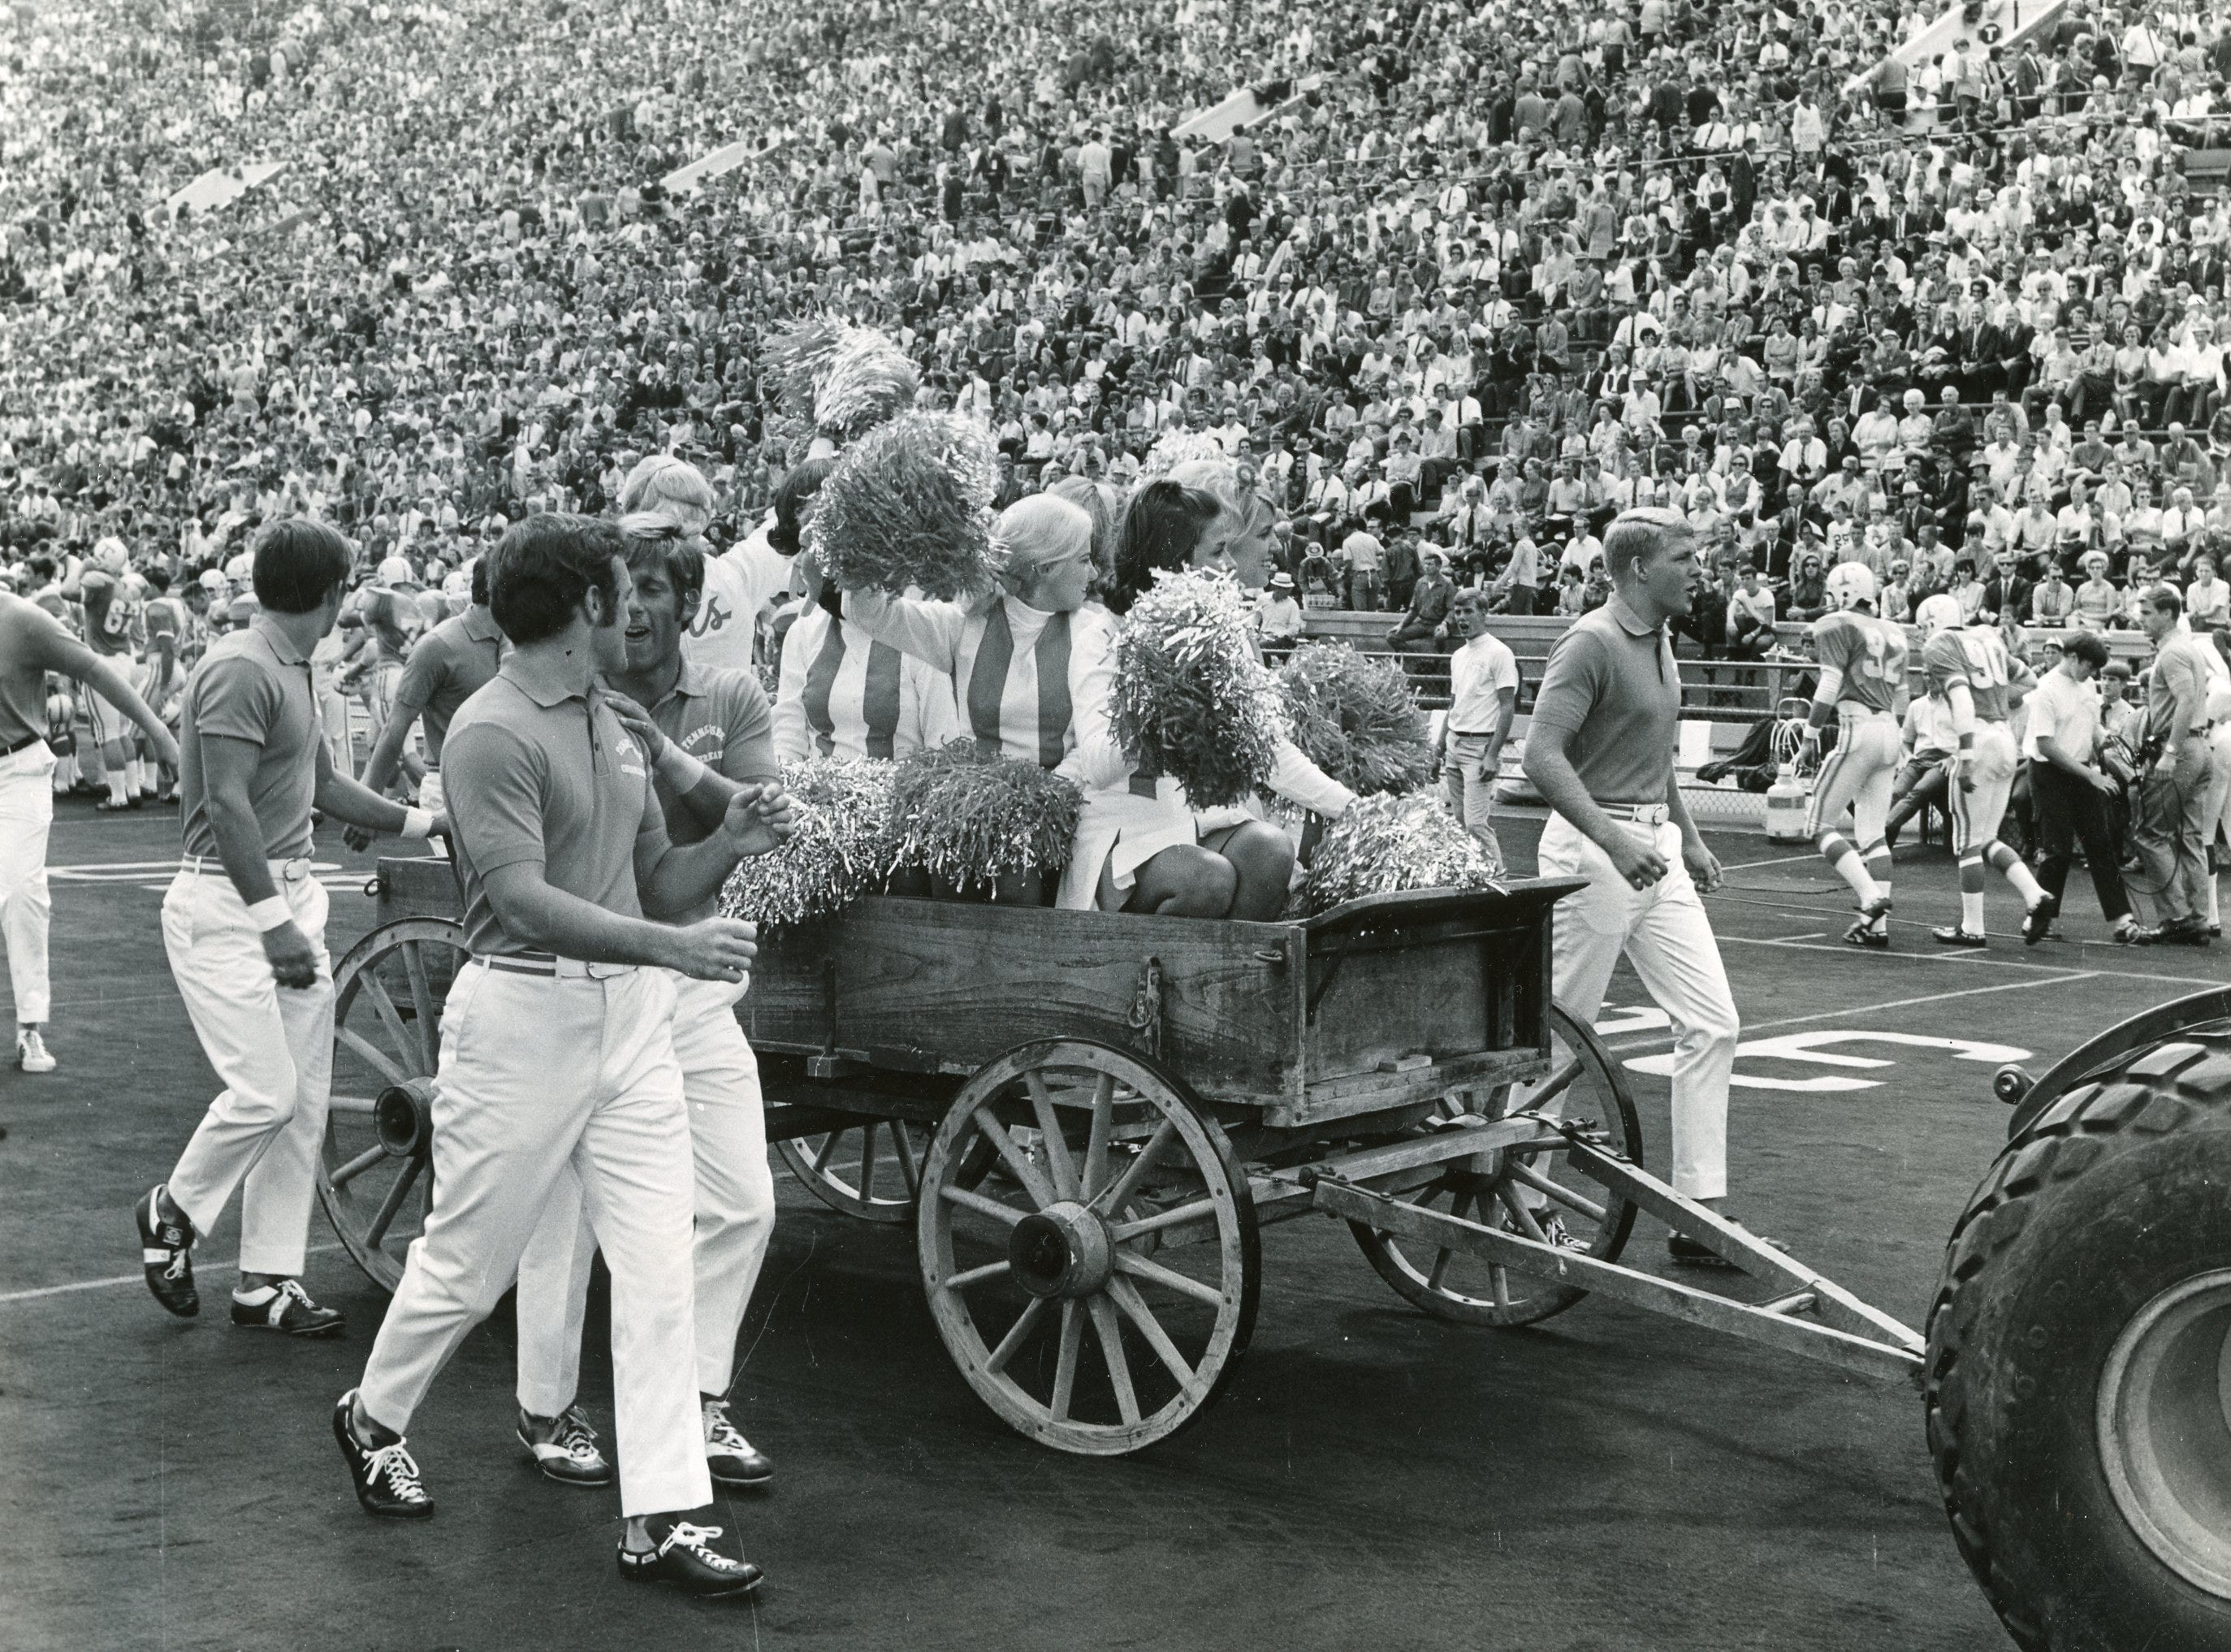 UT cheerleaders ride in the first wagon used by a cheer team. September, 1969.